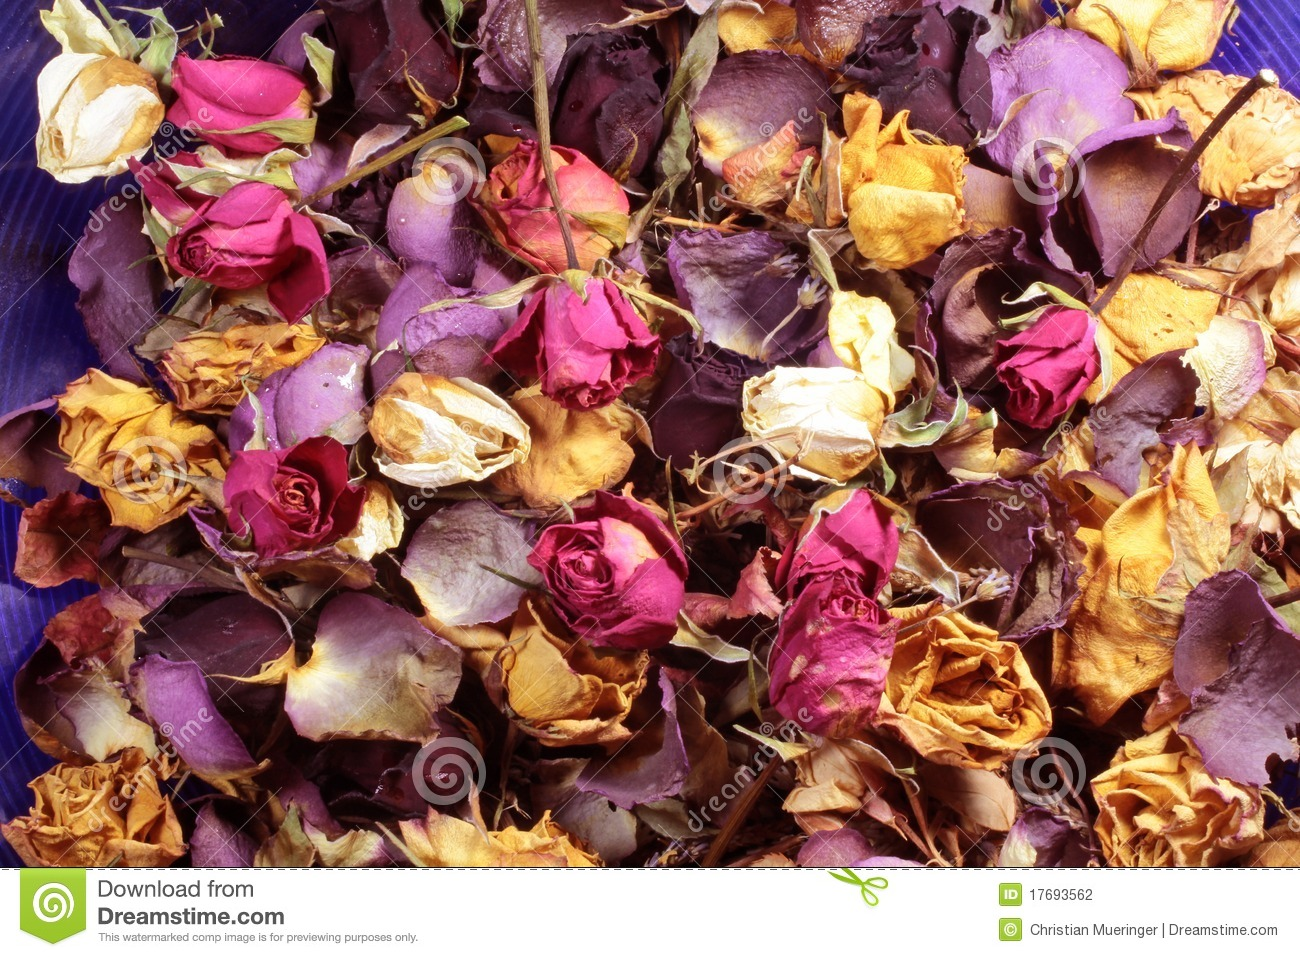 Close-up of a potpourri of colorful dried roses.